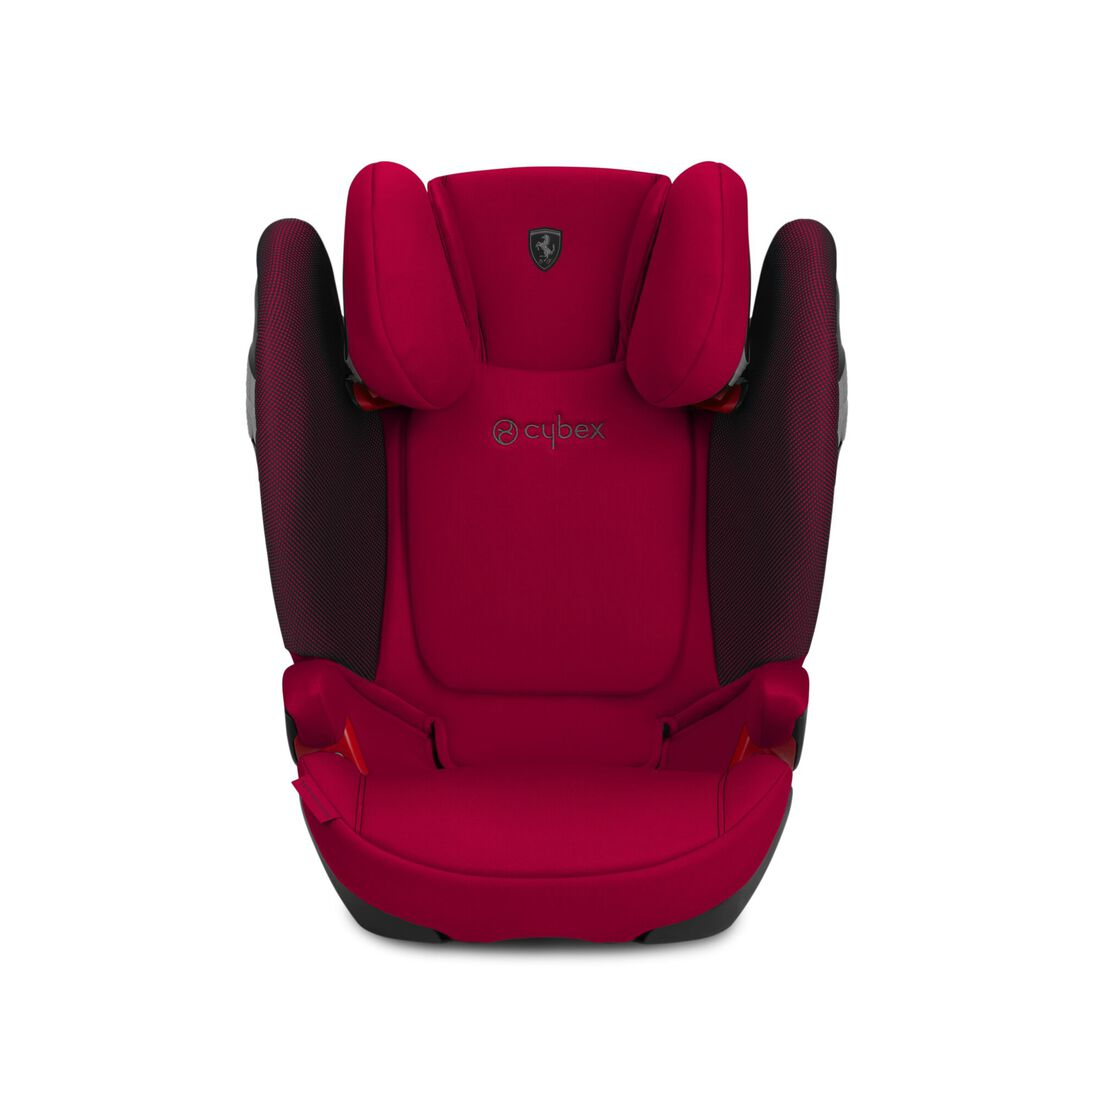 CYBEX Solution S-fix - Ferrari Racing Red in Ferrari Racing Red large image number 2